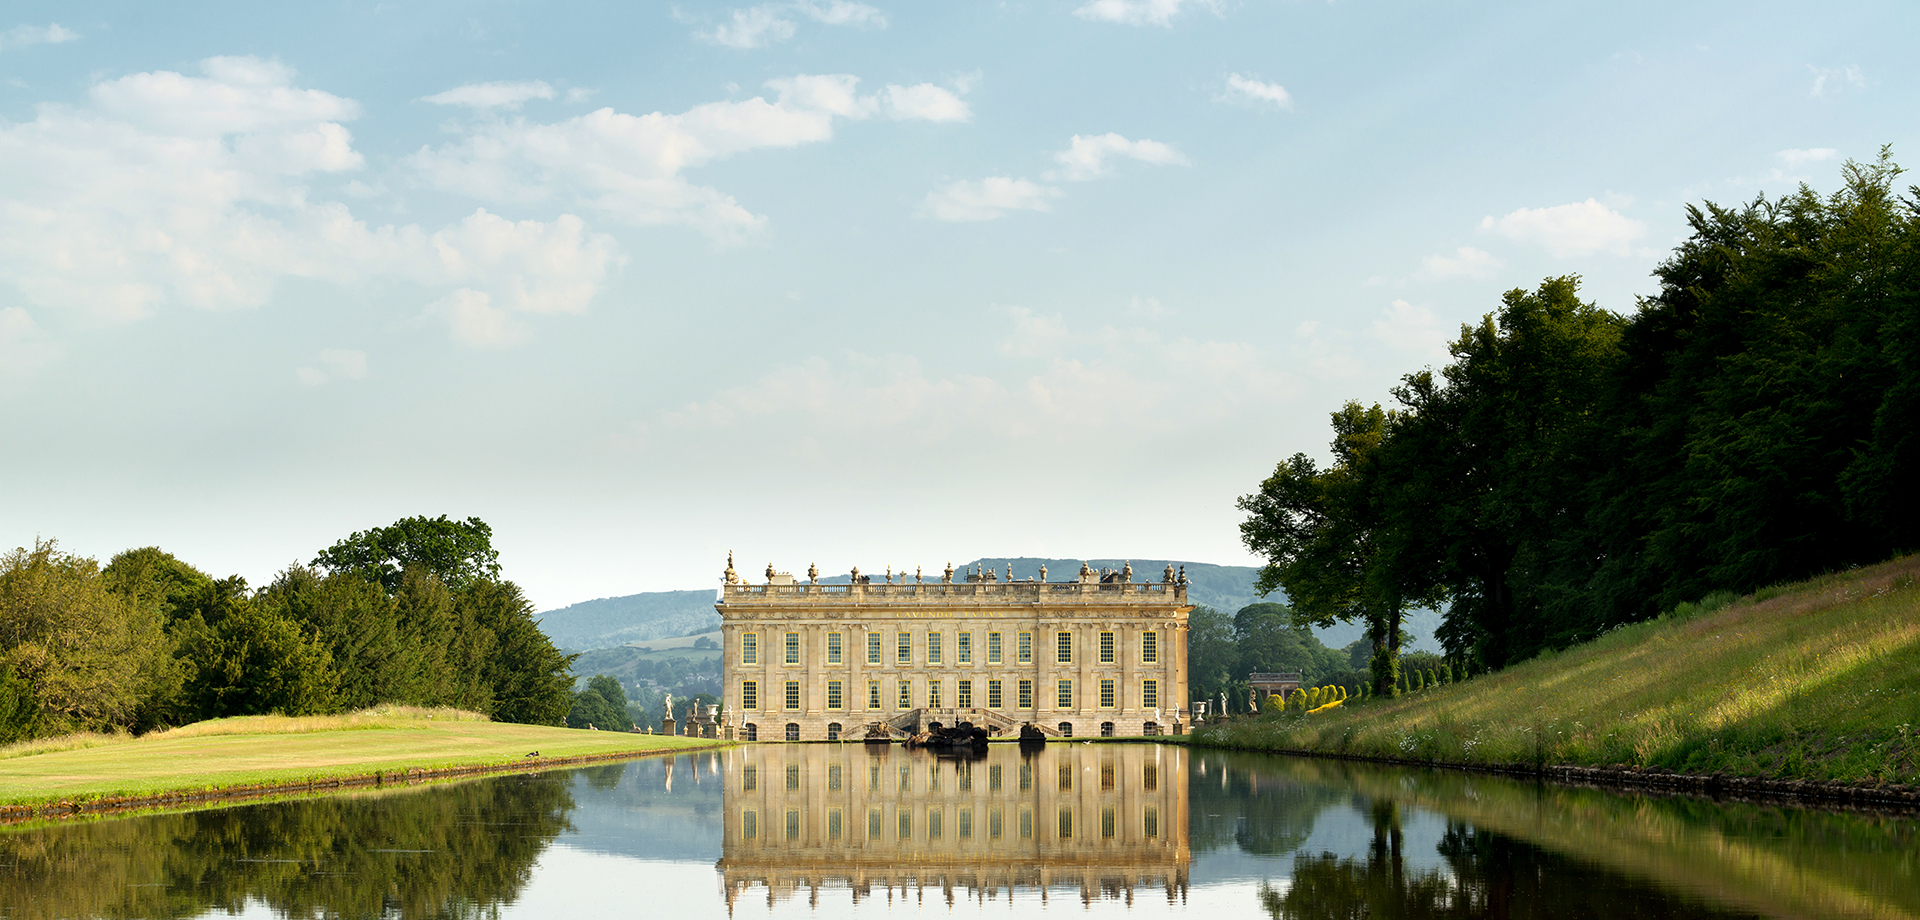 Christmas lasts longer at Chatsworth